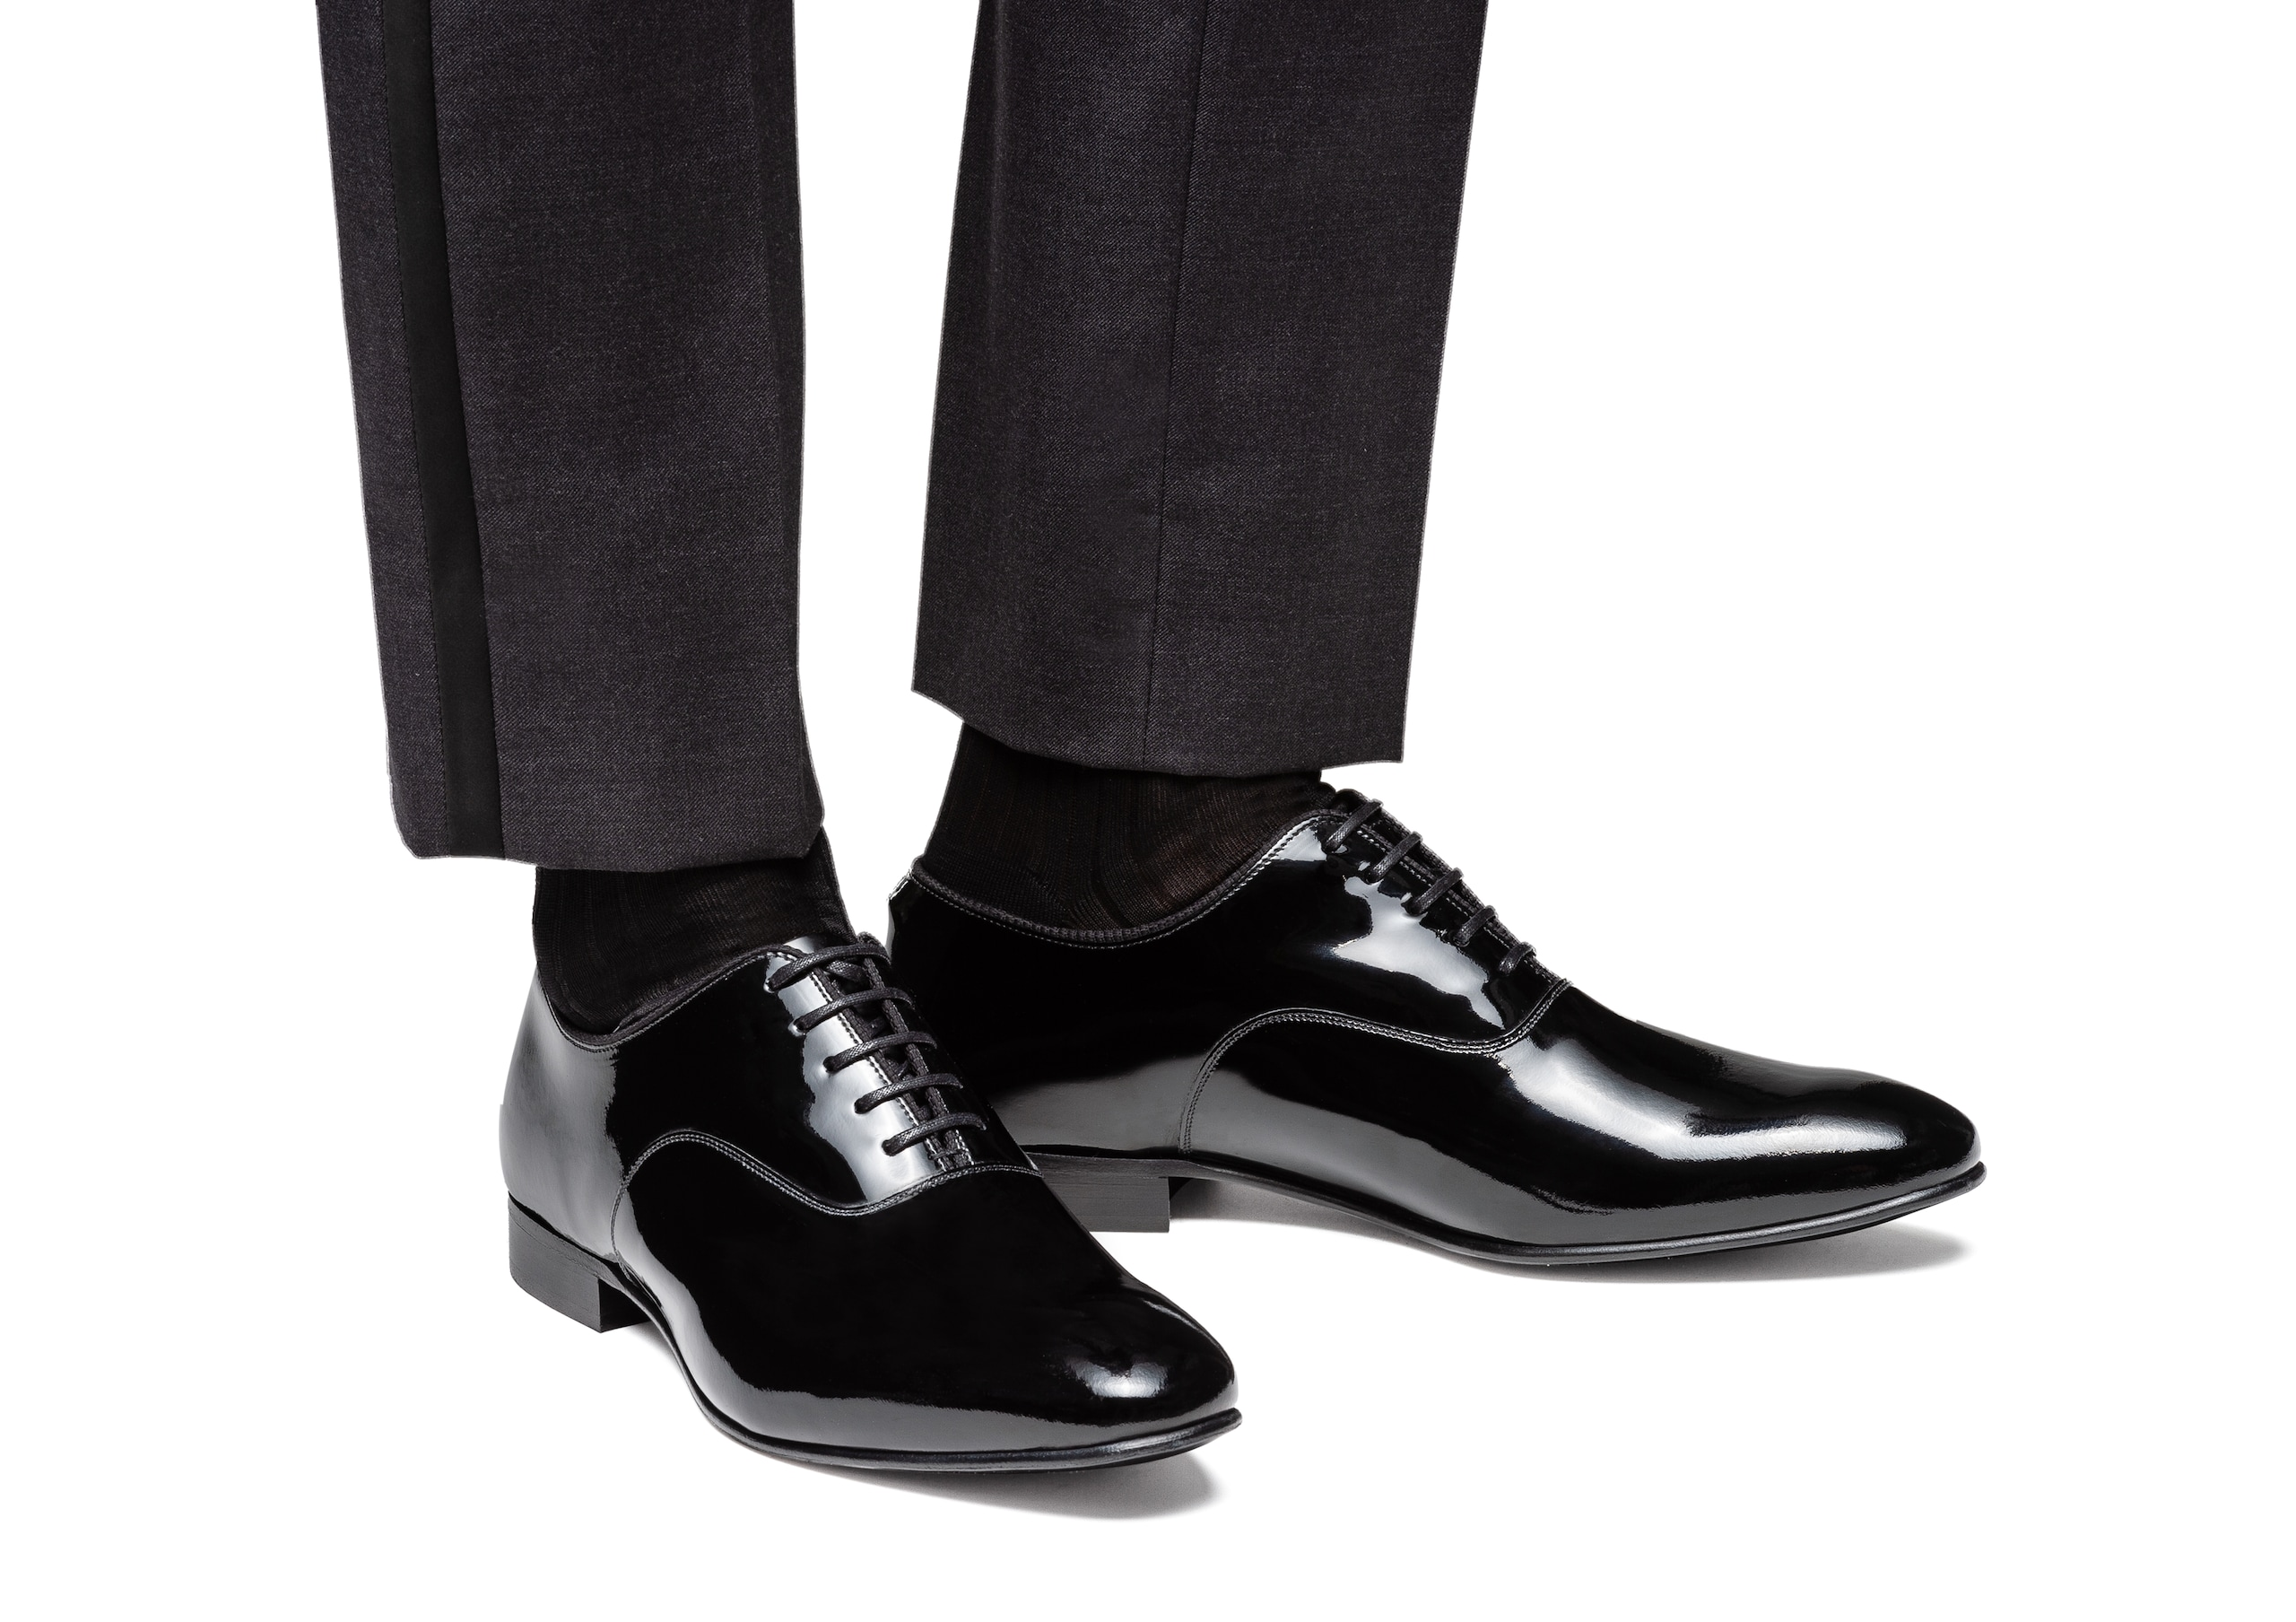 Whaley Church's Patent Leather Oxford Black